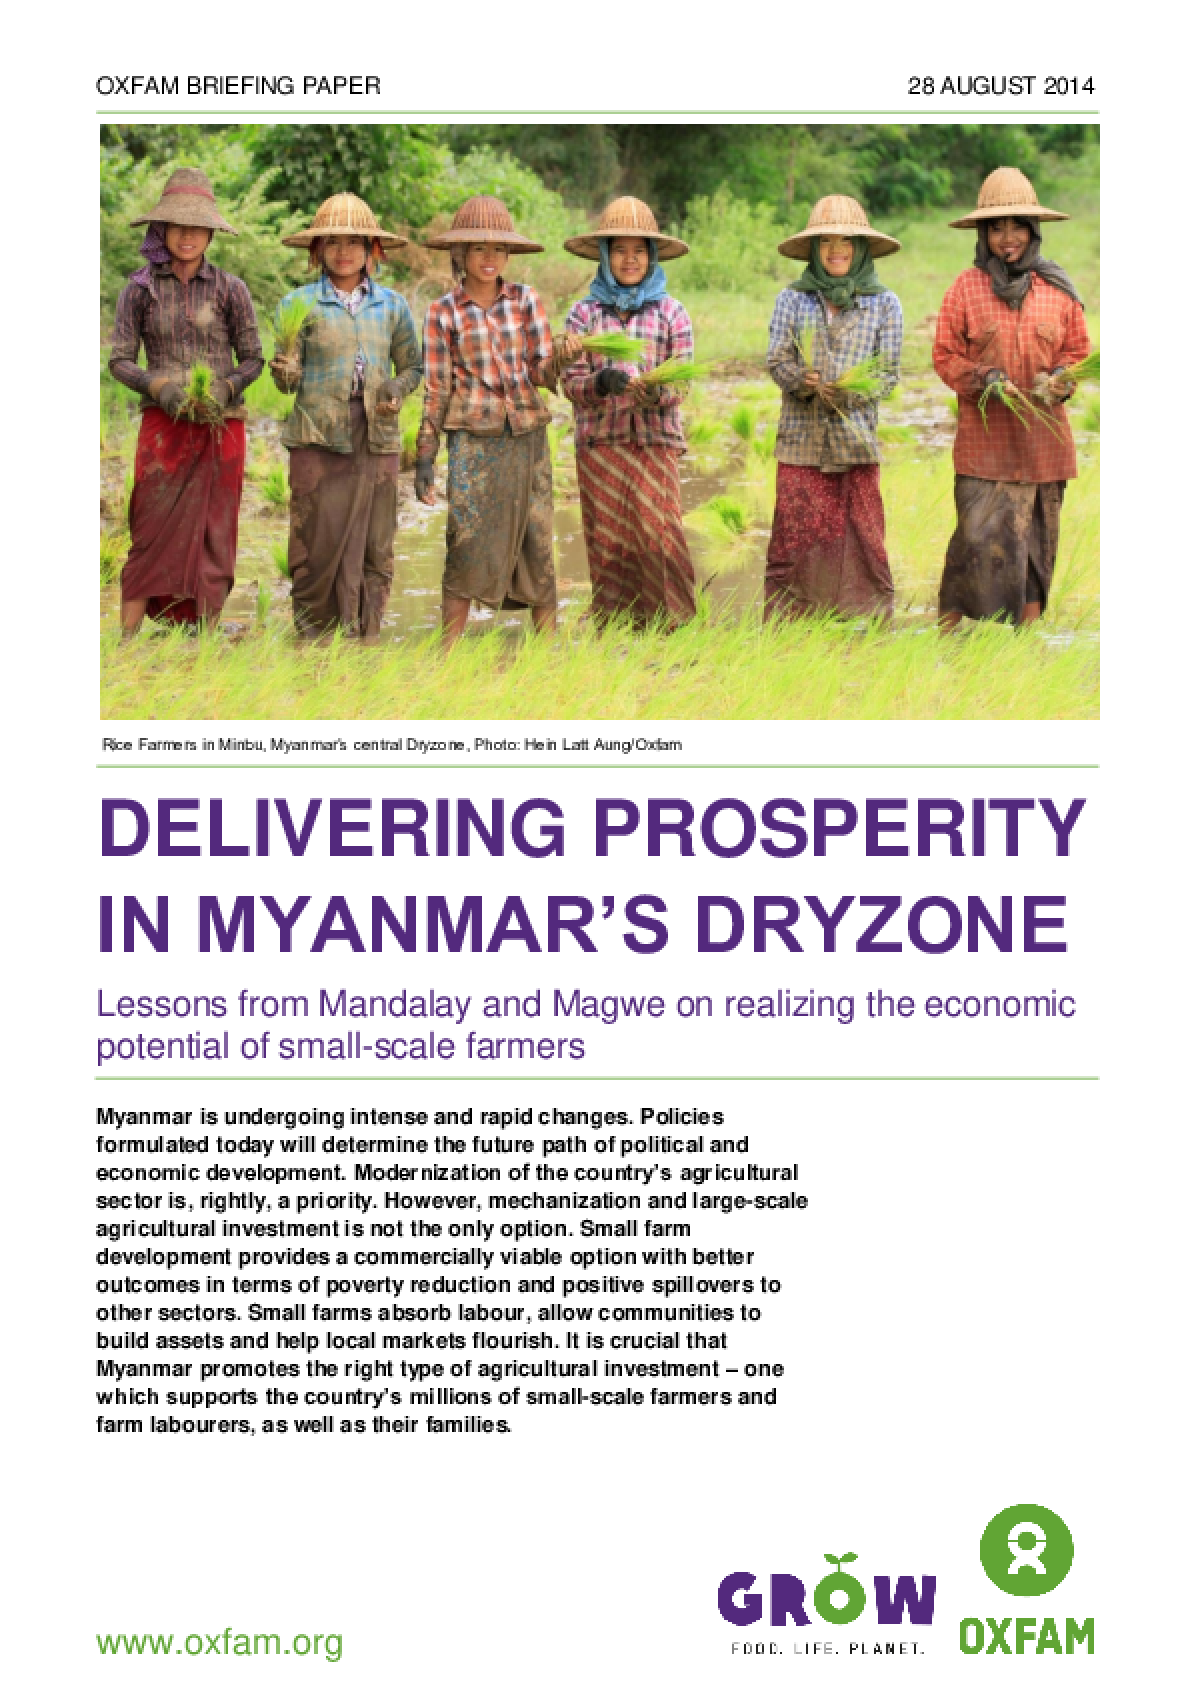 Delivering Prosperity in Myanmar's Dryzone: Lessons from Mandalay and Magwe on realizing the economic potential of small-scale farmers